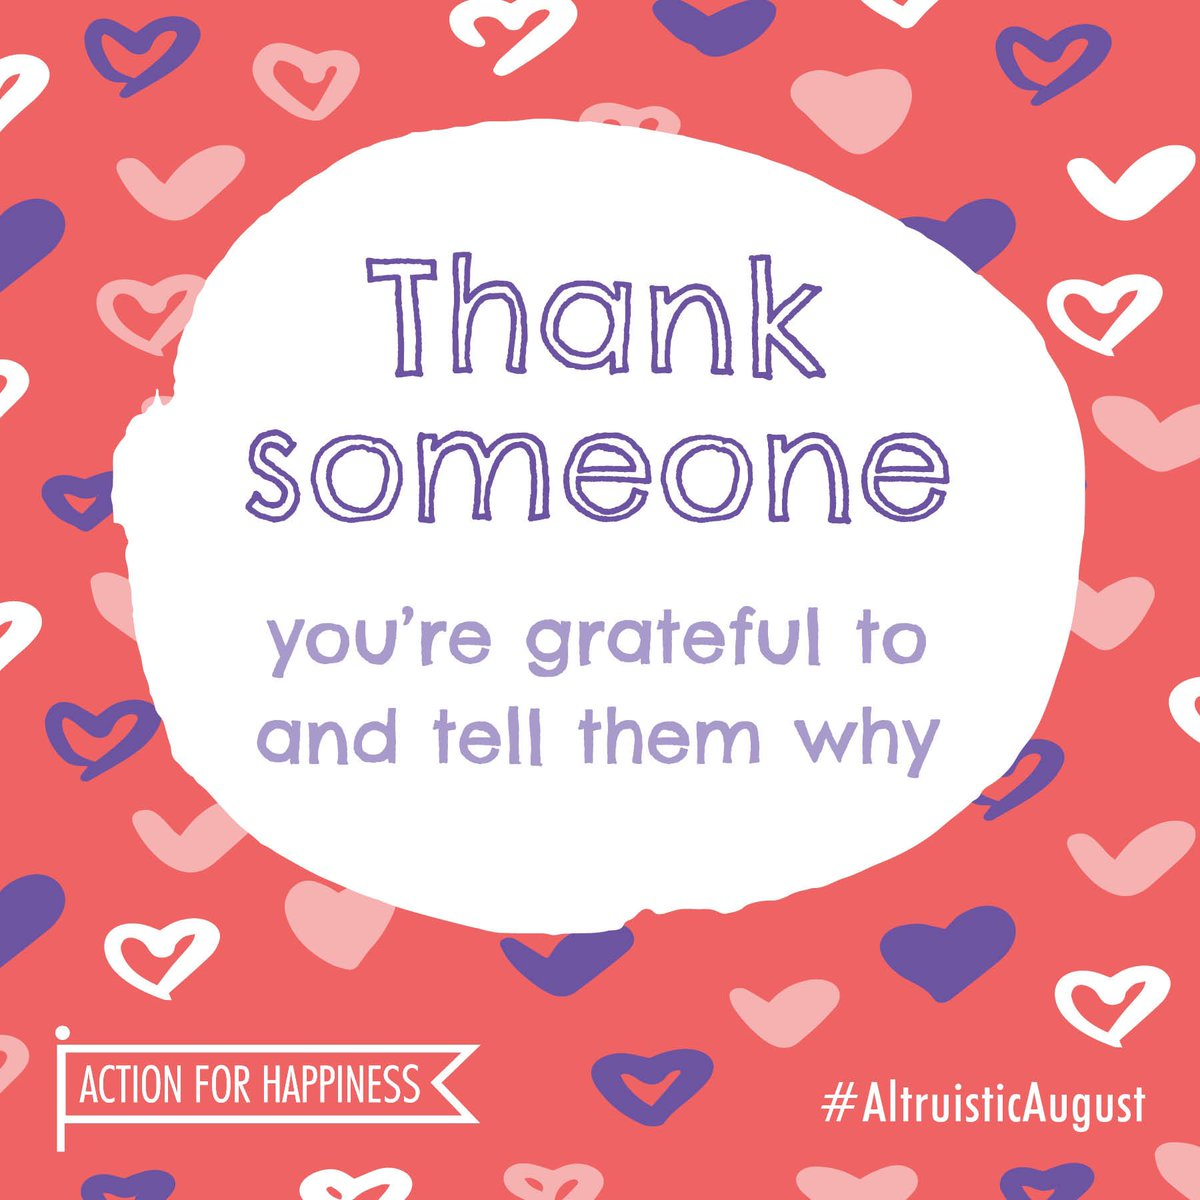 Altruistic August - Day 7: Thank someone youre grateful to and tell them why actionforhappiness.org/altruistic-aug… #AltruisticAugust